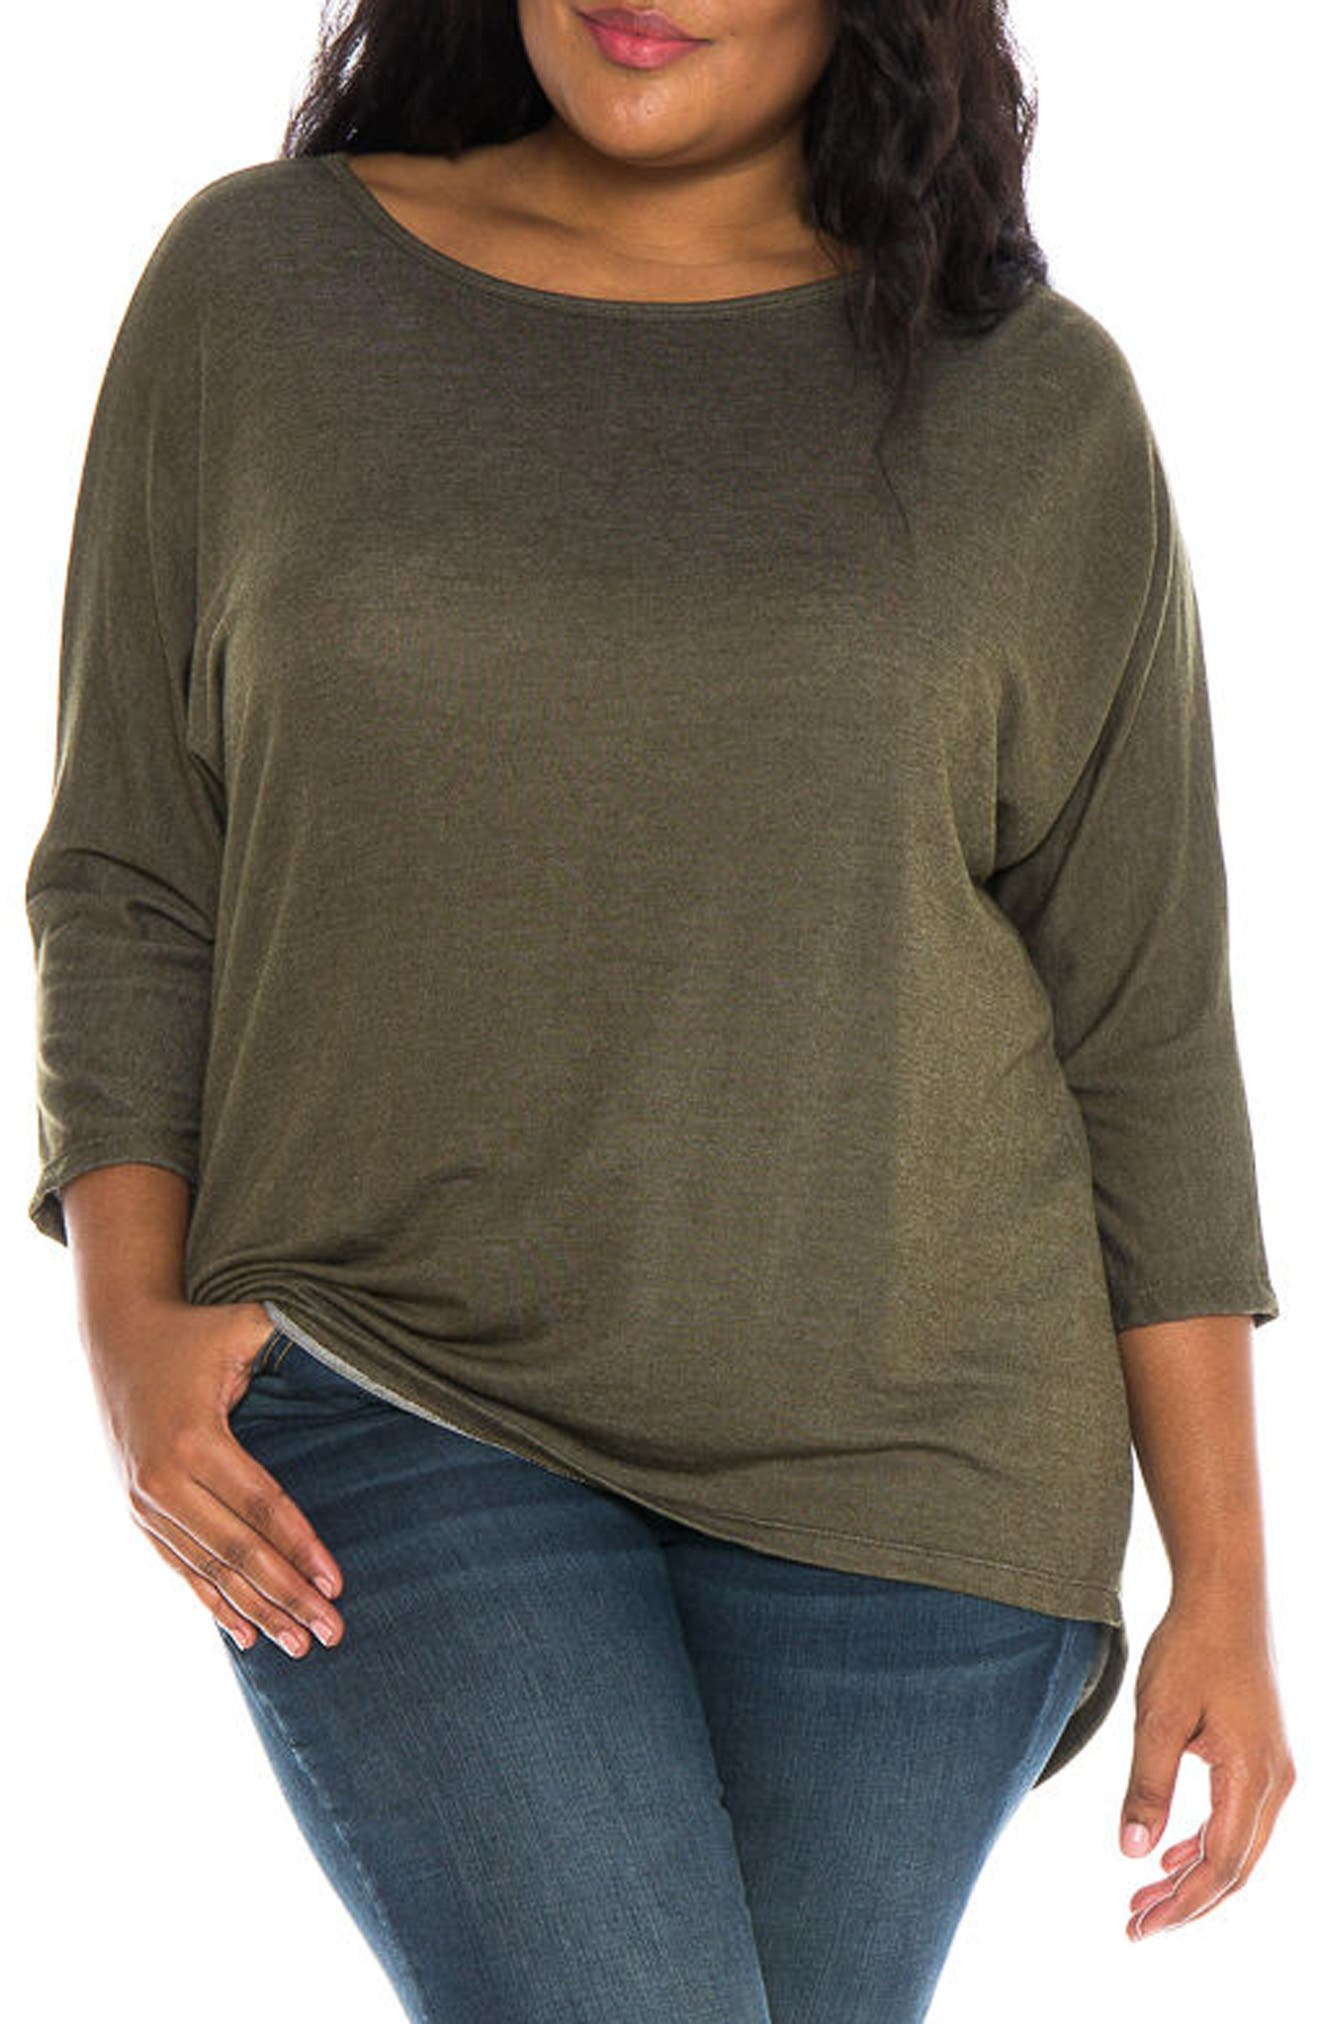 Alternate Image 1 Selected - SLINK Jeans Dolman Sleeve Top (Plus Size)